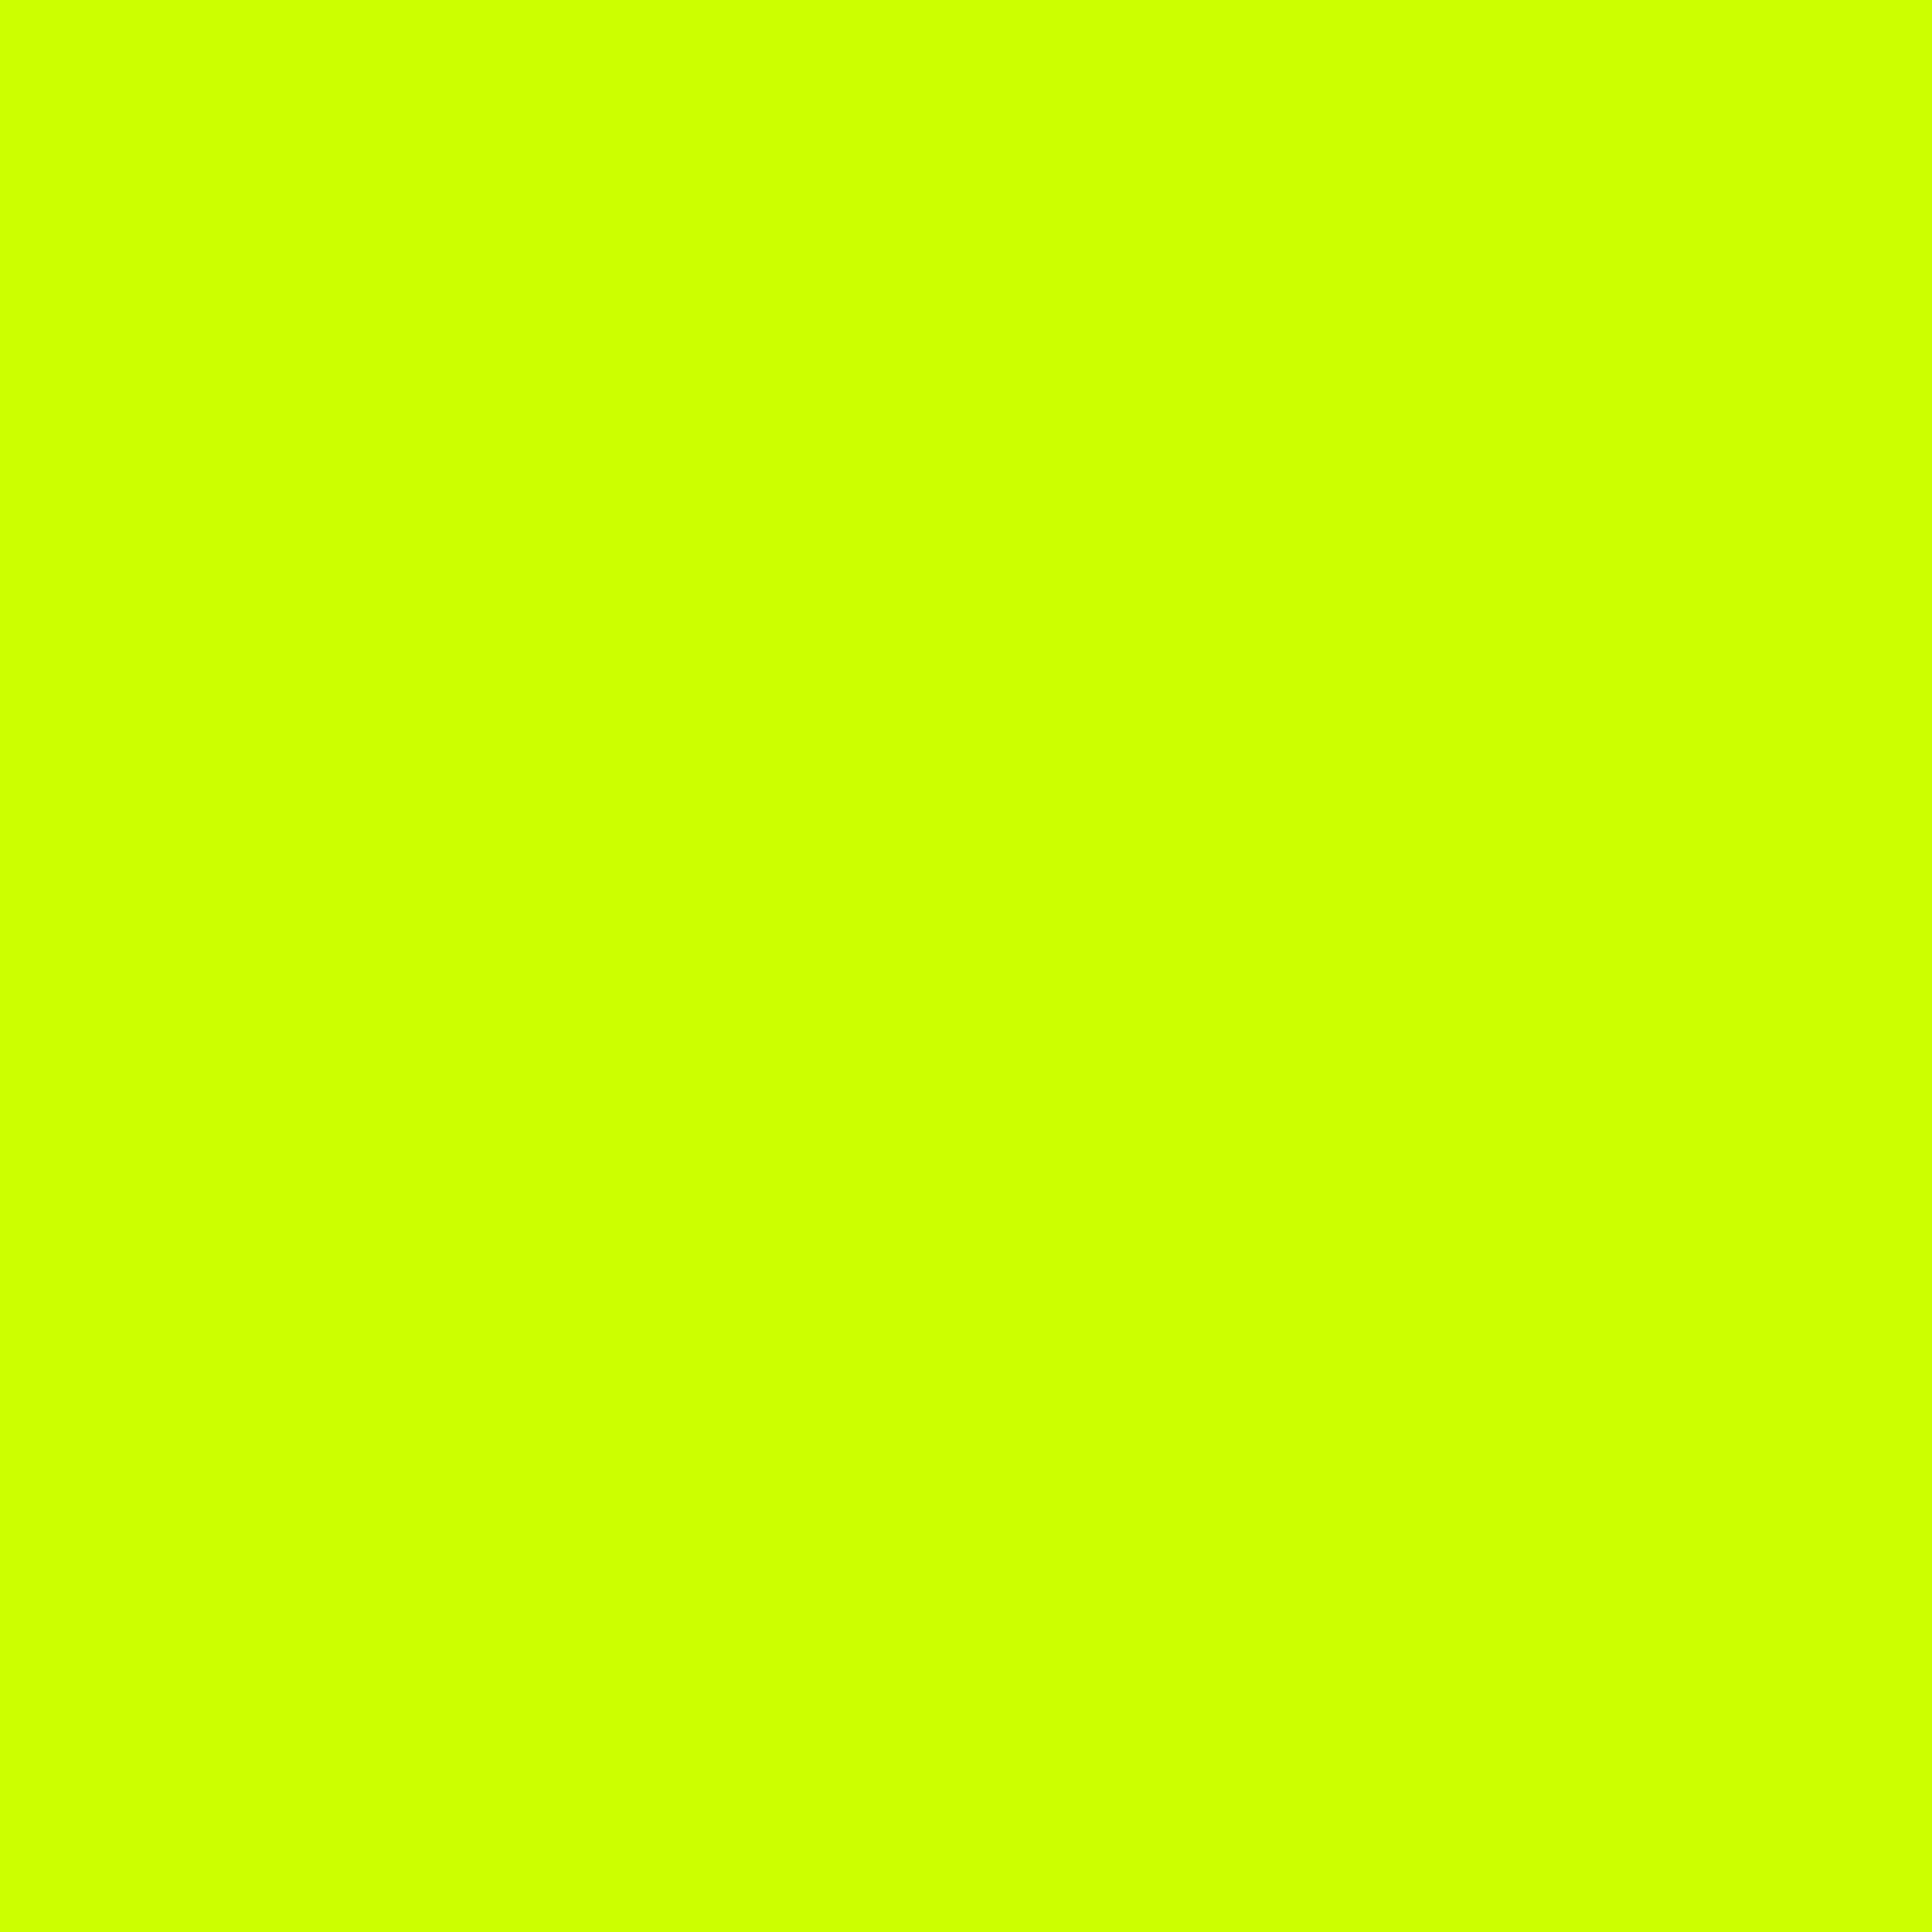 2732x2732 Fluorescent Yellow Solid Color Background